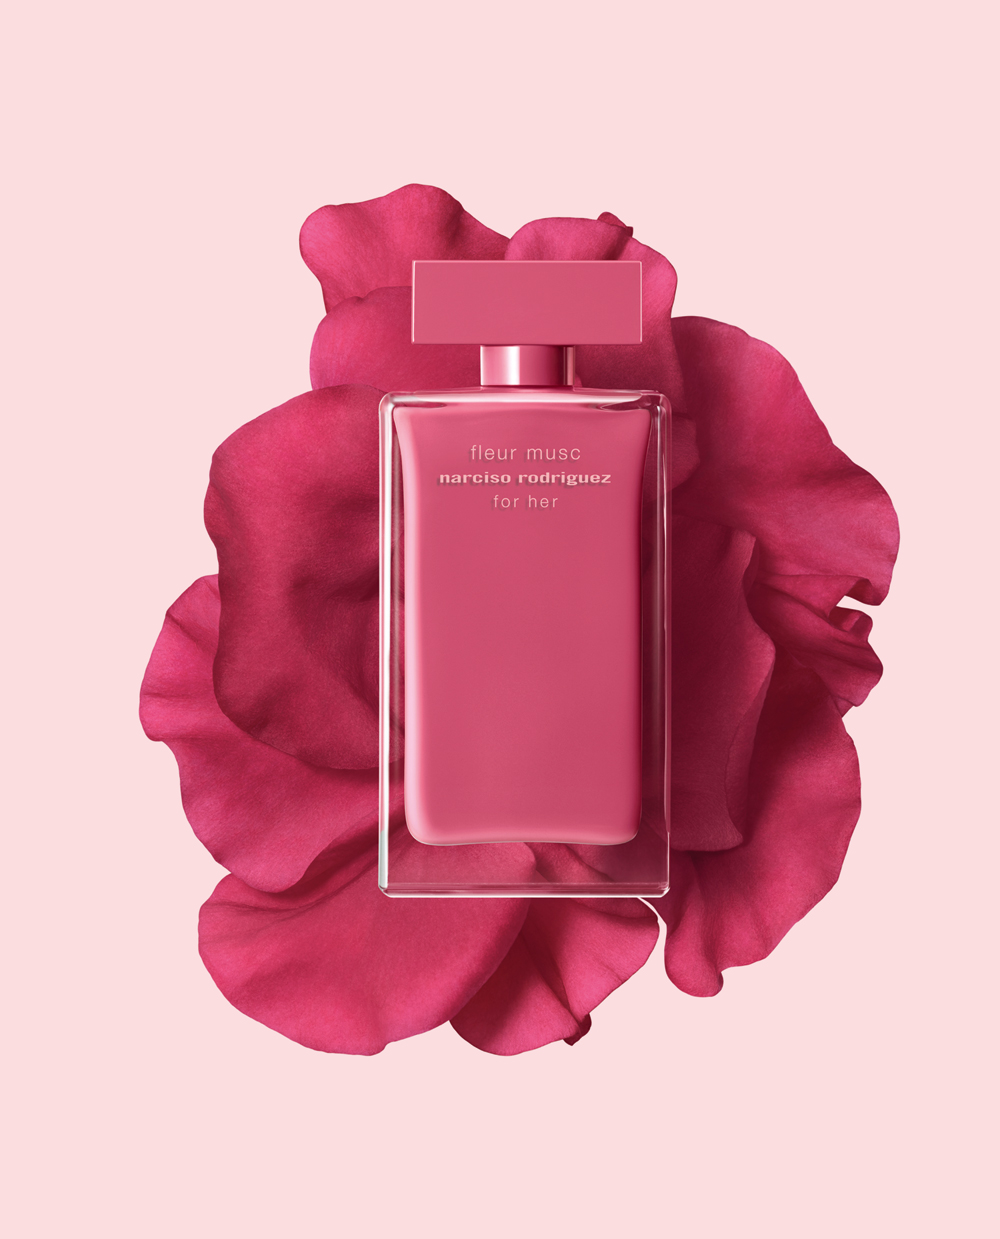 Narciso Rodriguez Fleur Musc For Her Парфюмерная вода, 50 мл mancera wave musc